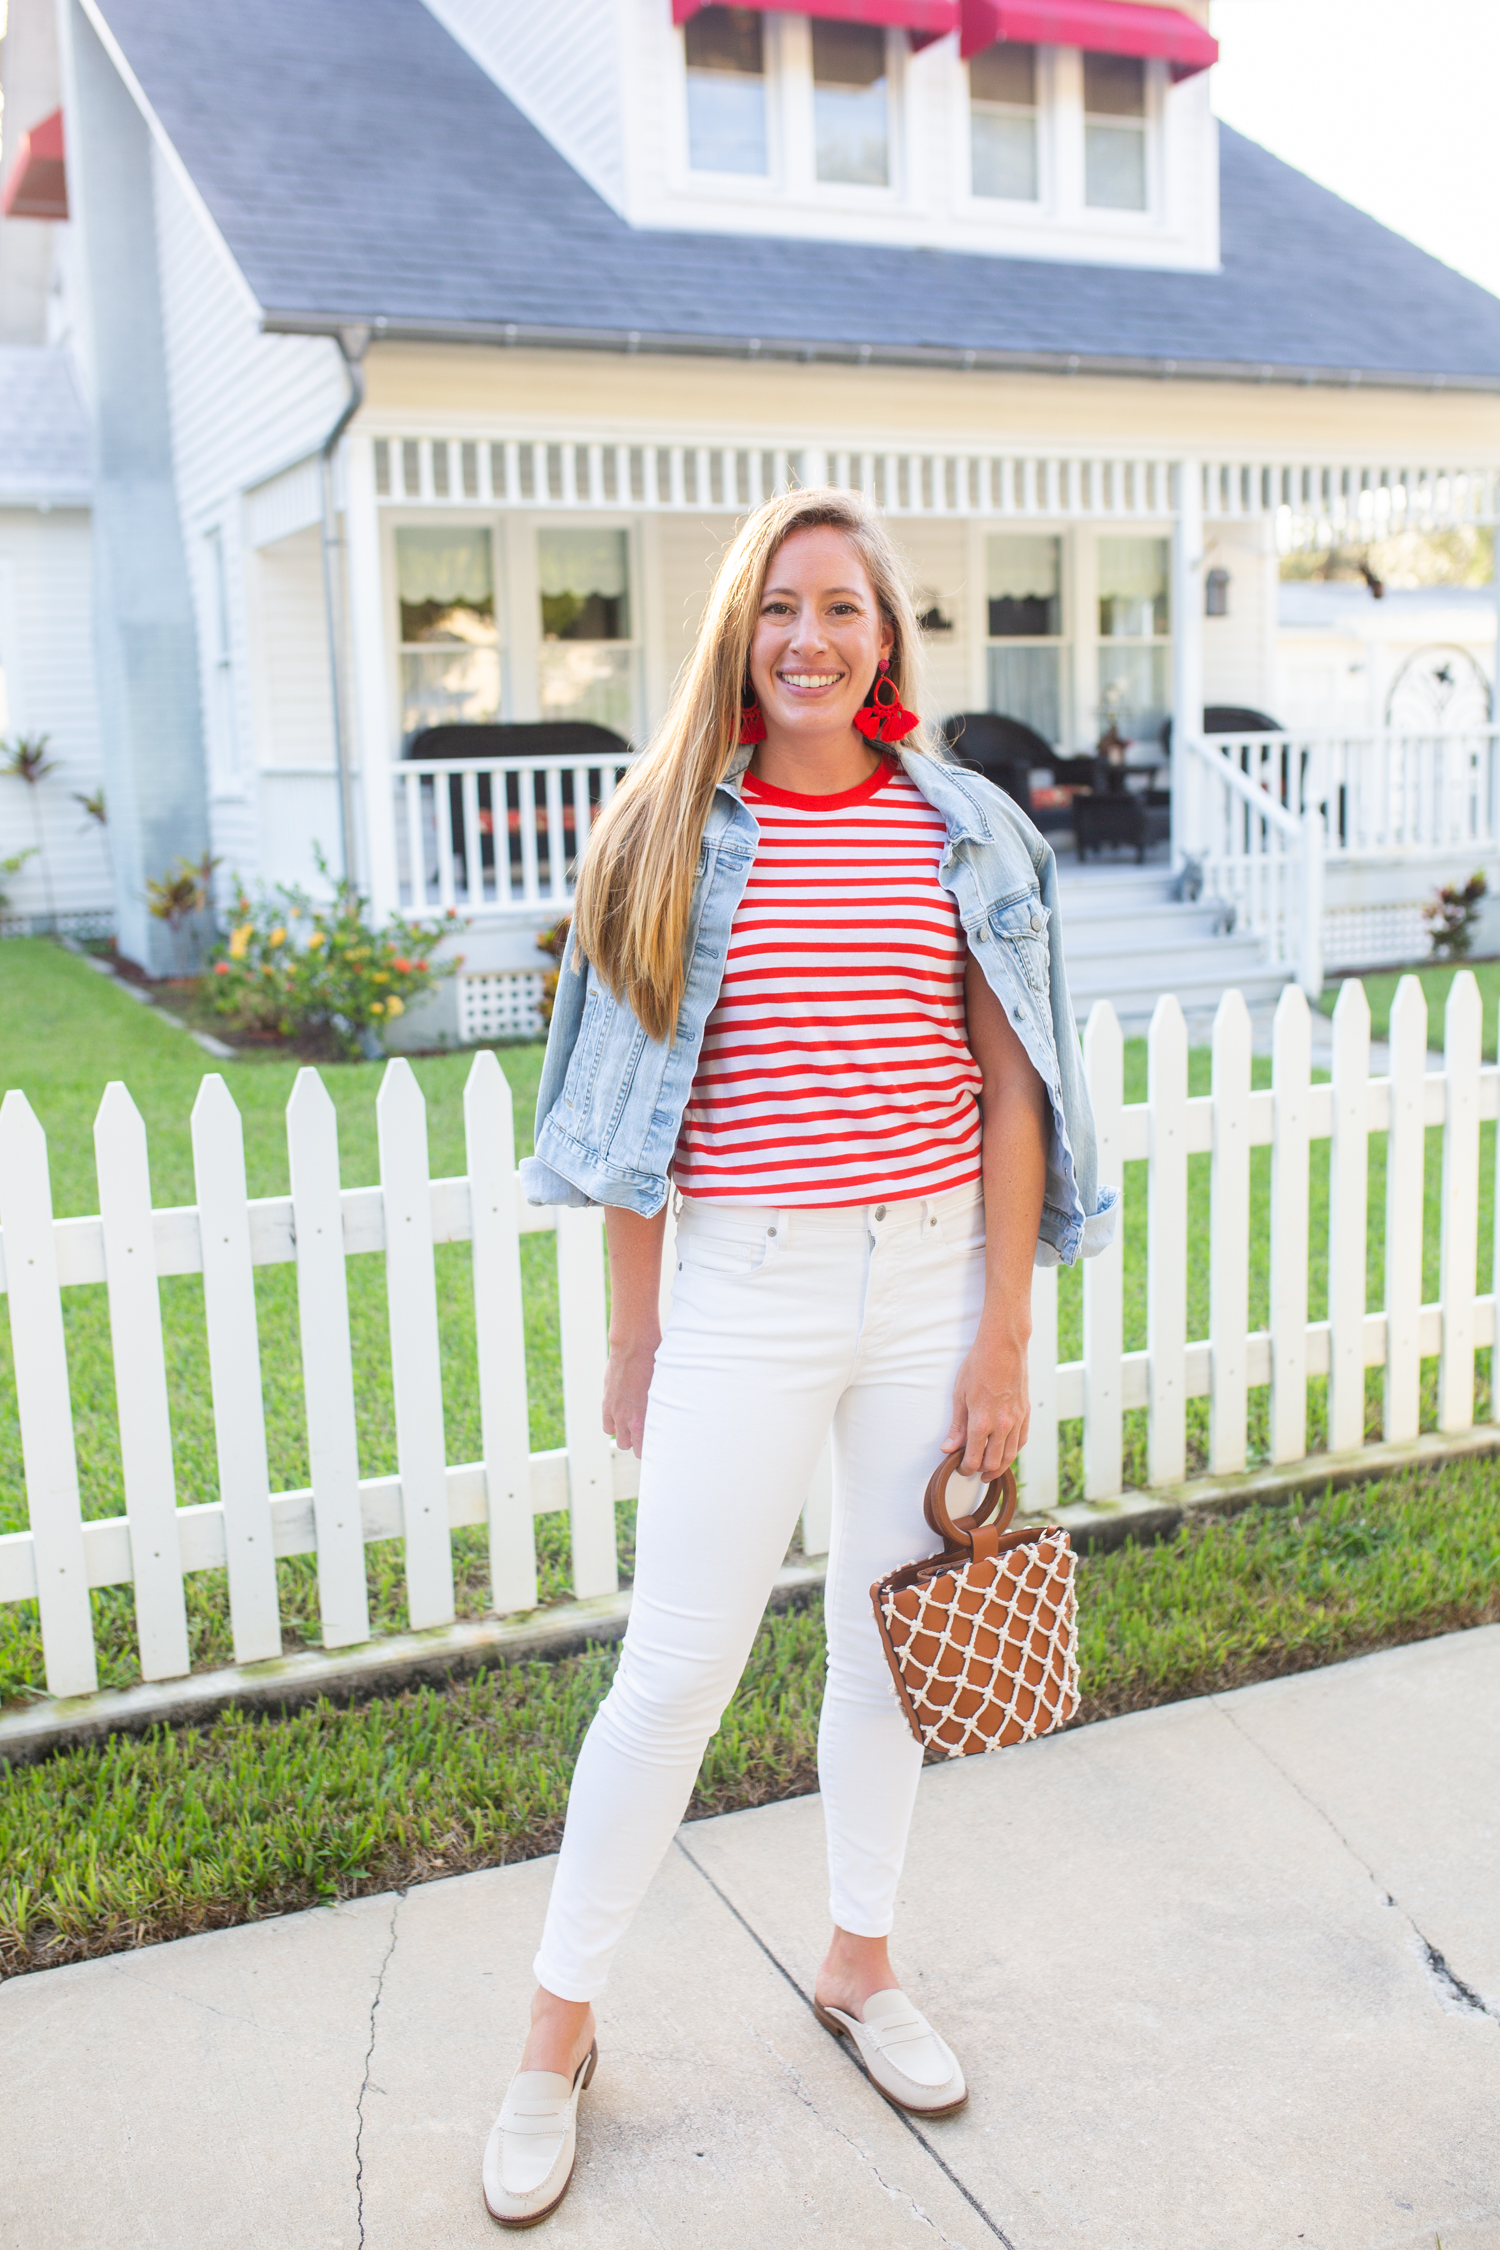 Everlane White Mid-Rise Skinny Jeans / Striped Top / Fall Outfit Inspiration / Jean Jacket / Casual Fall Outfit / Coastal Style / Preppy Outfit  / How to Style White Jeans - Sunshine Style - A Preppy Fashion and Coastal Lifestyle Blog by Katie